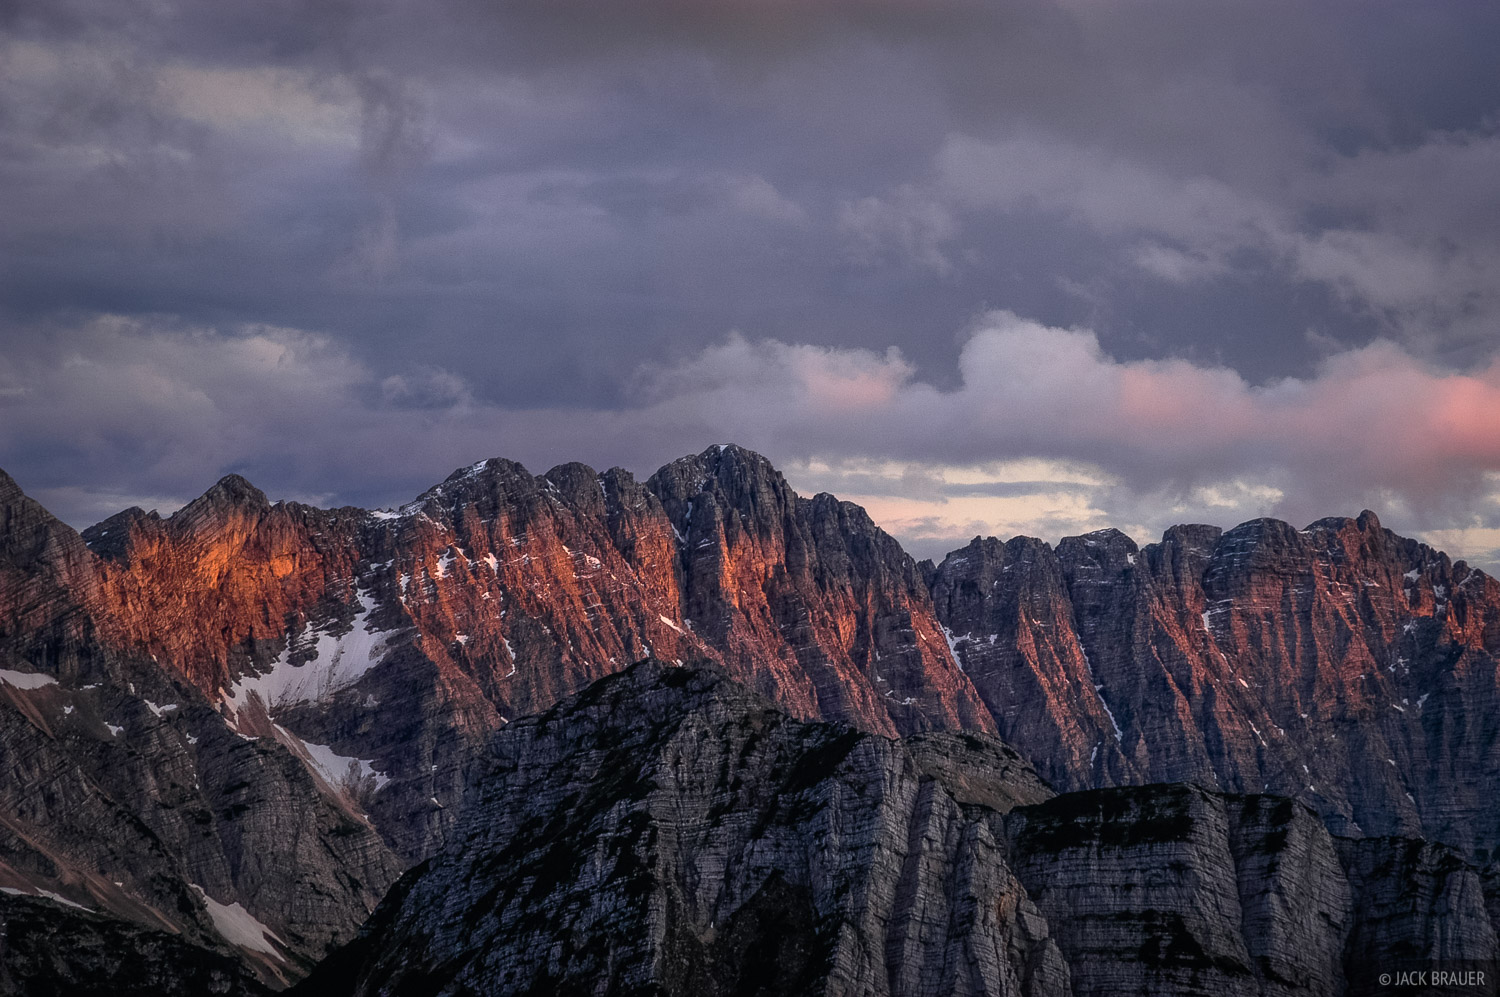 Julian Alps, Slovenia, Pihavec, sunset, photo